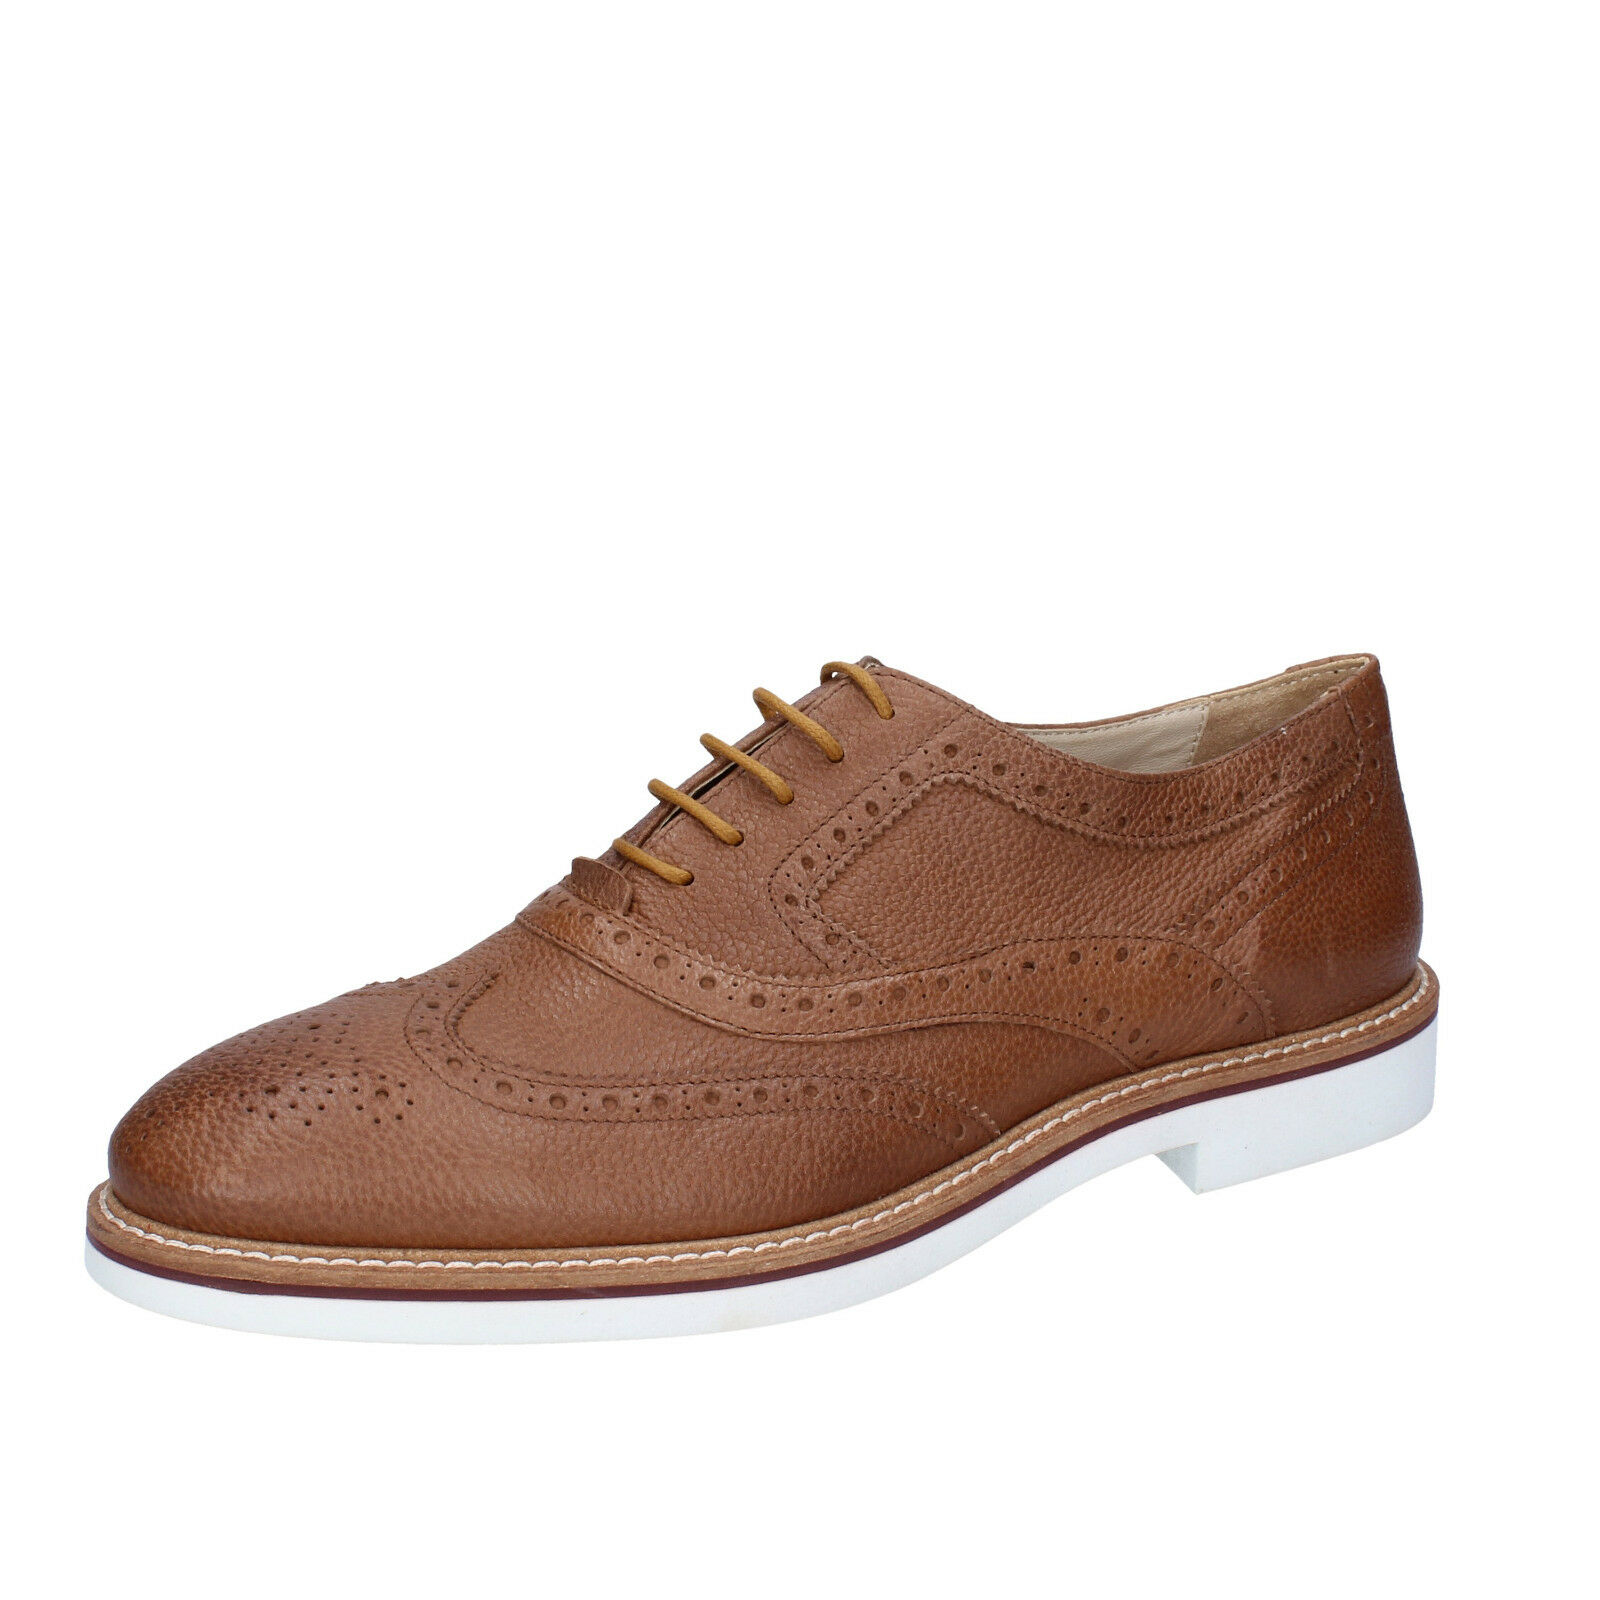 Men's zapatos K852 & SON 12 (EU 45) elegant marrón leather BT924-45